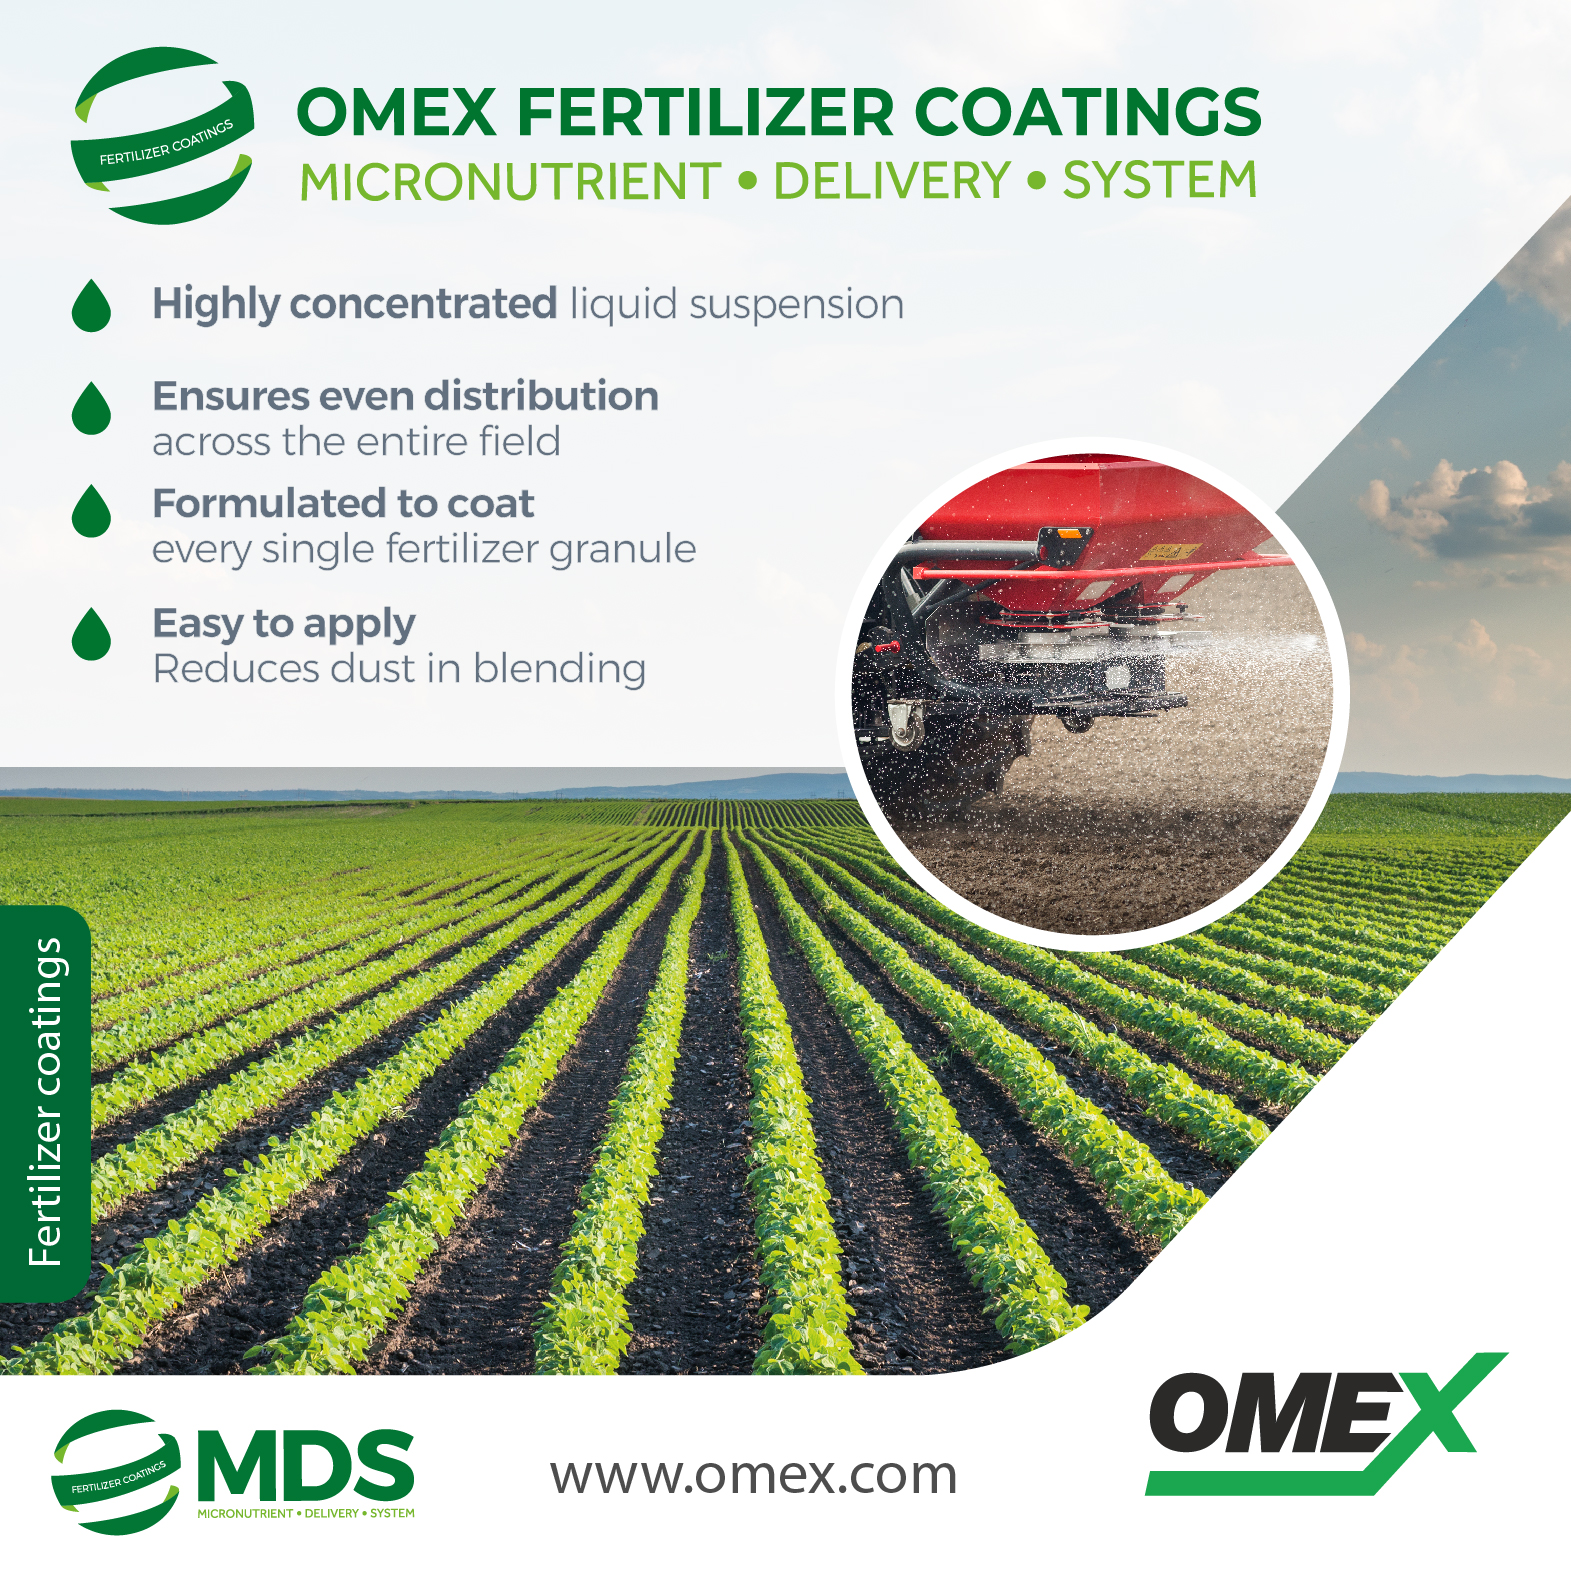 Help maximise crop yields with OMEX MDS